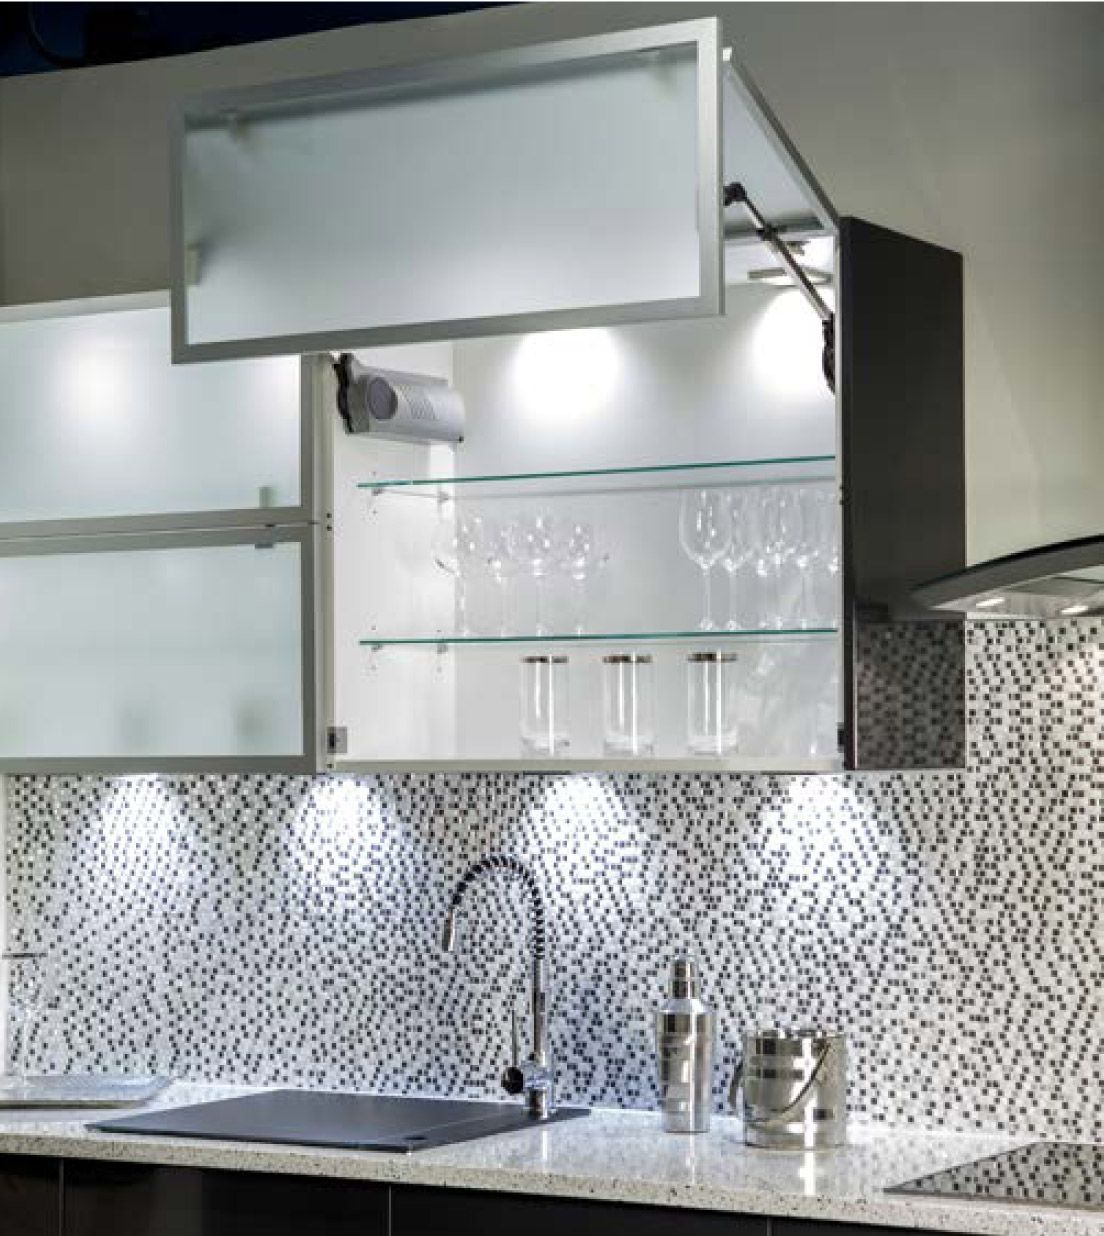 Hera lighting partnered with hans krug high end kitchens as their